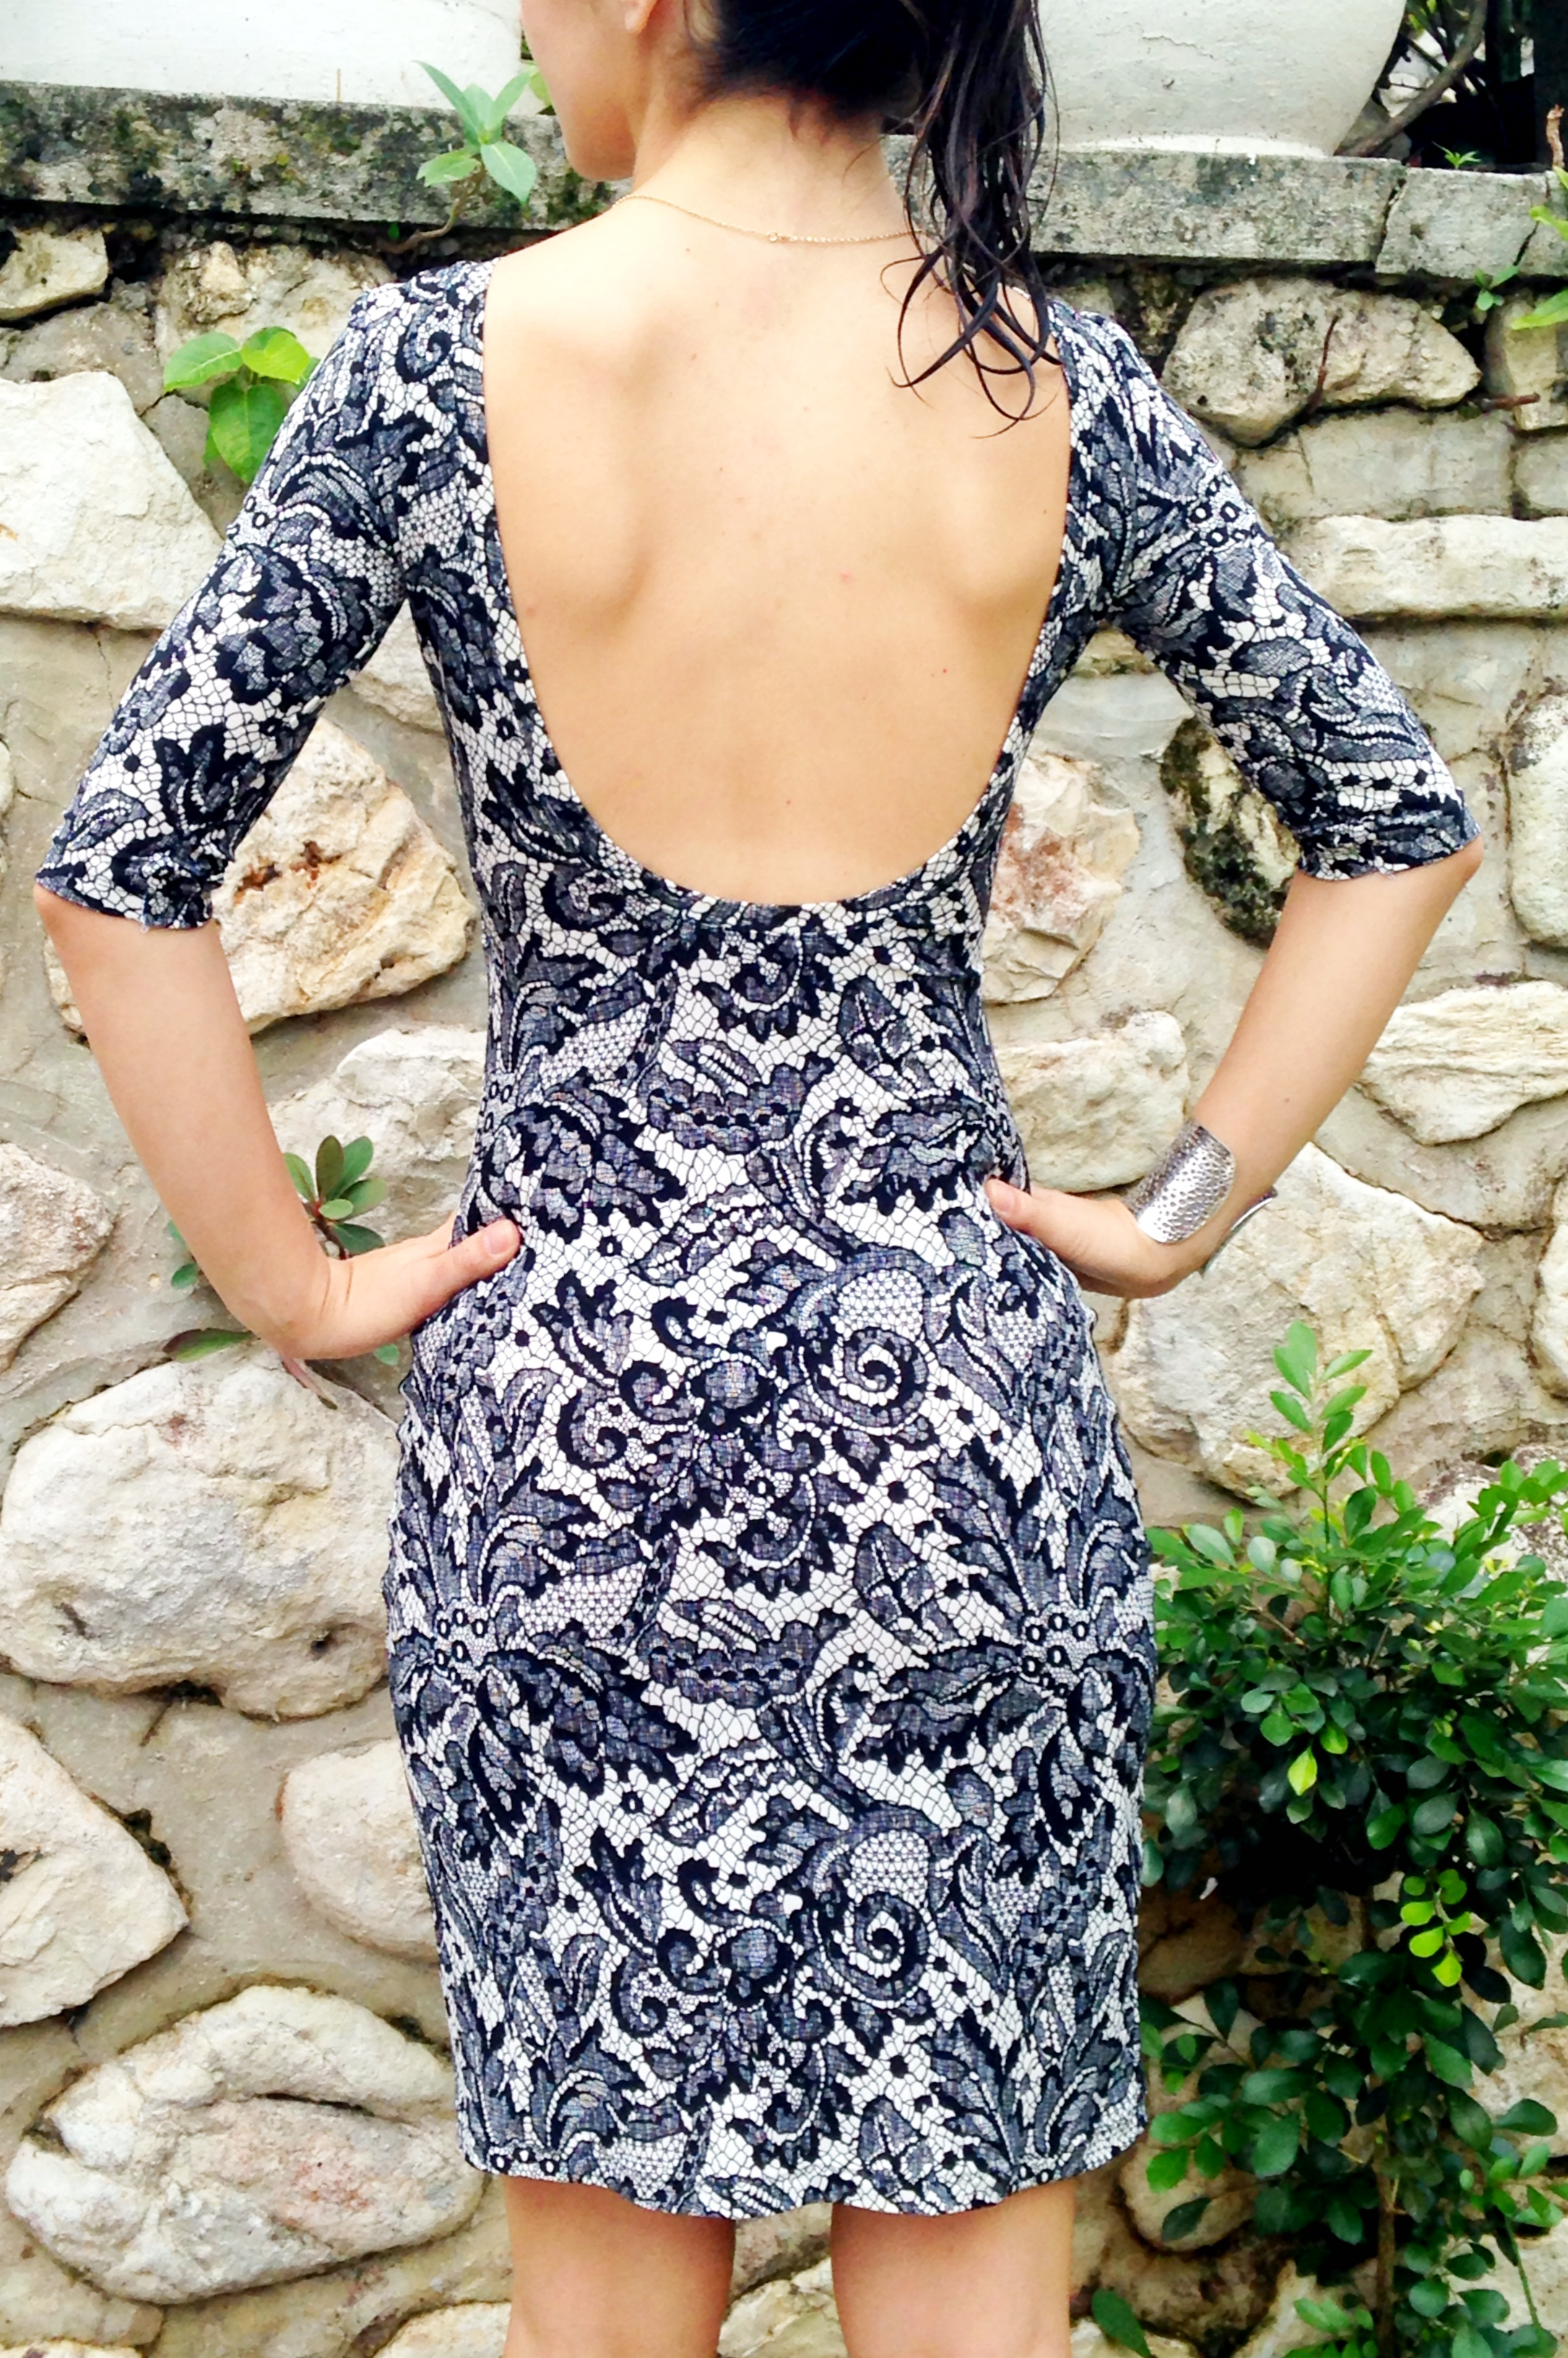 Back View - Nettie Dress